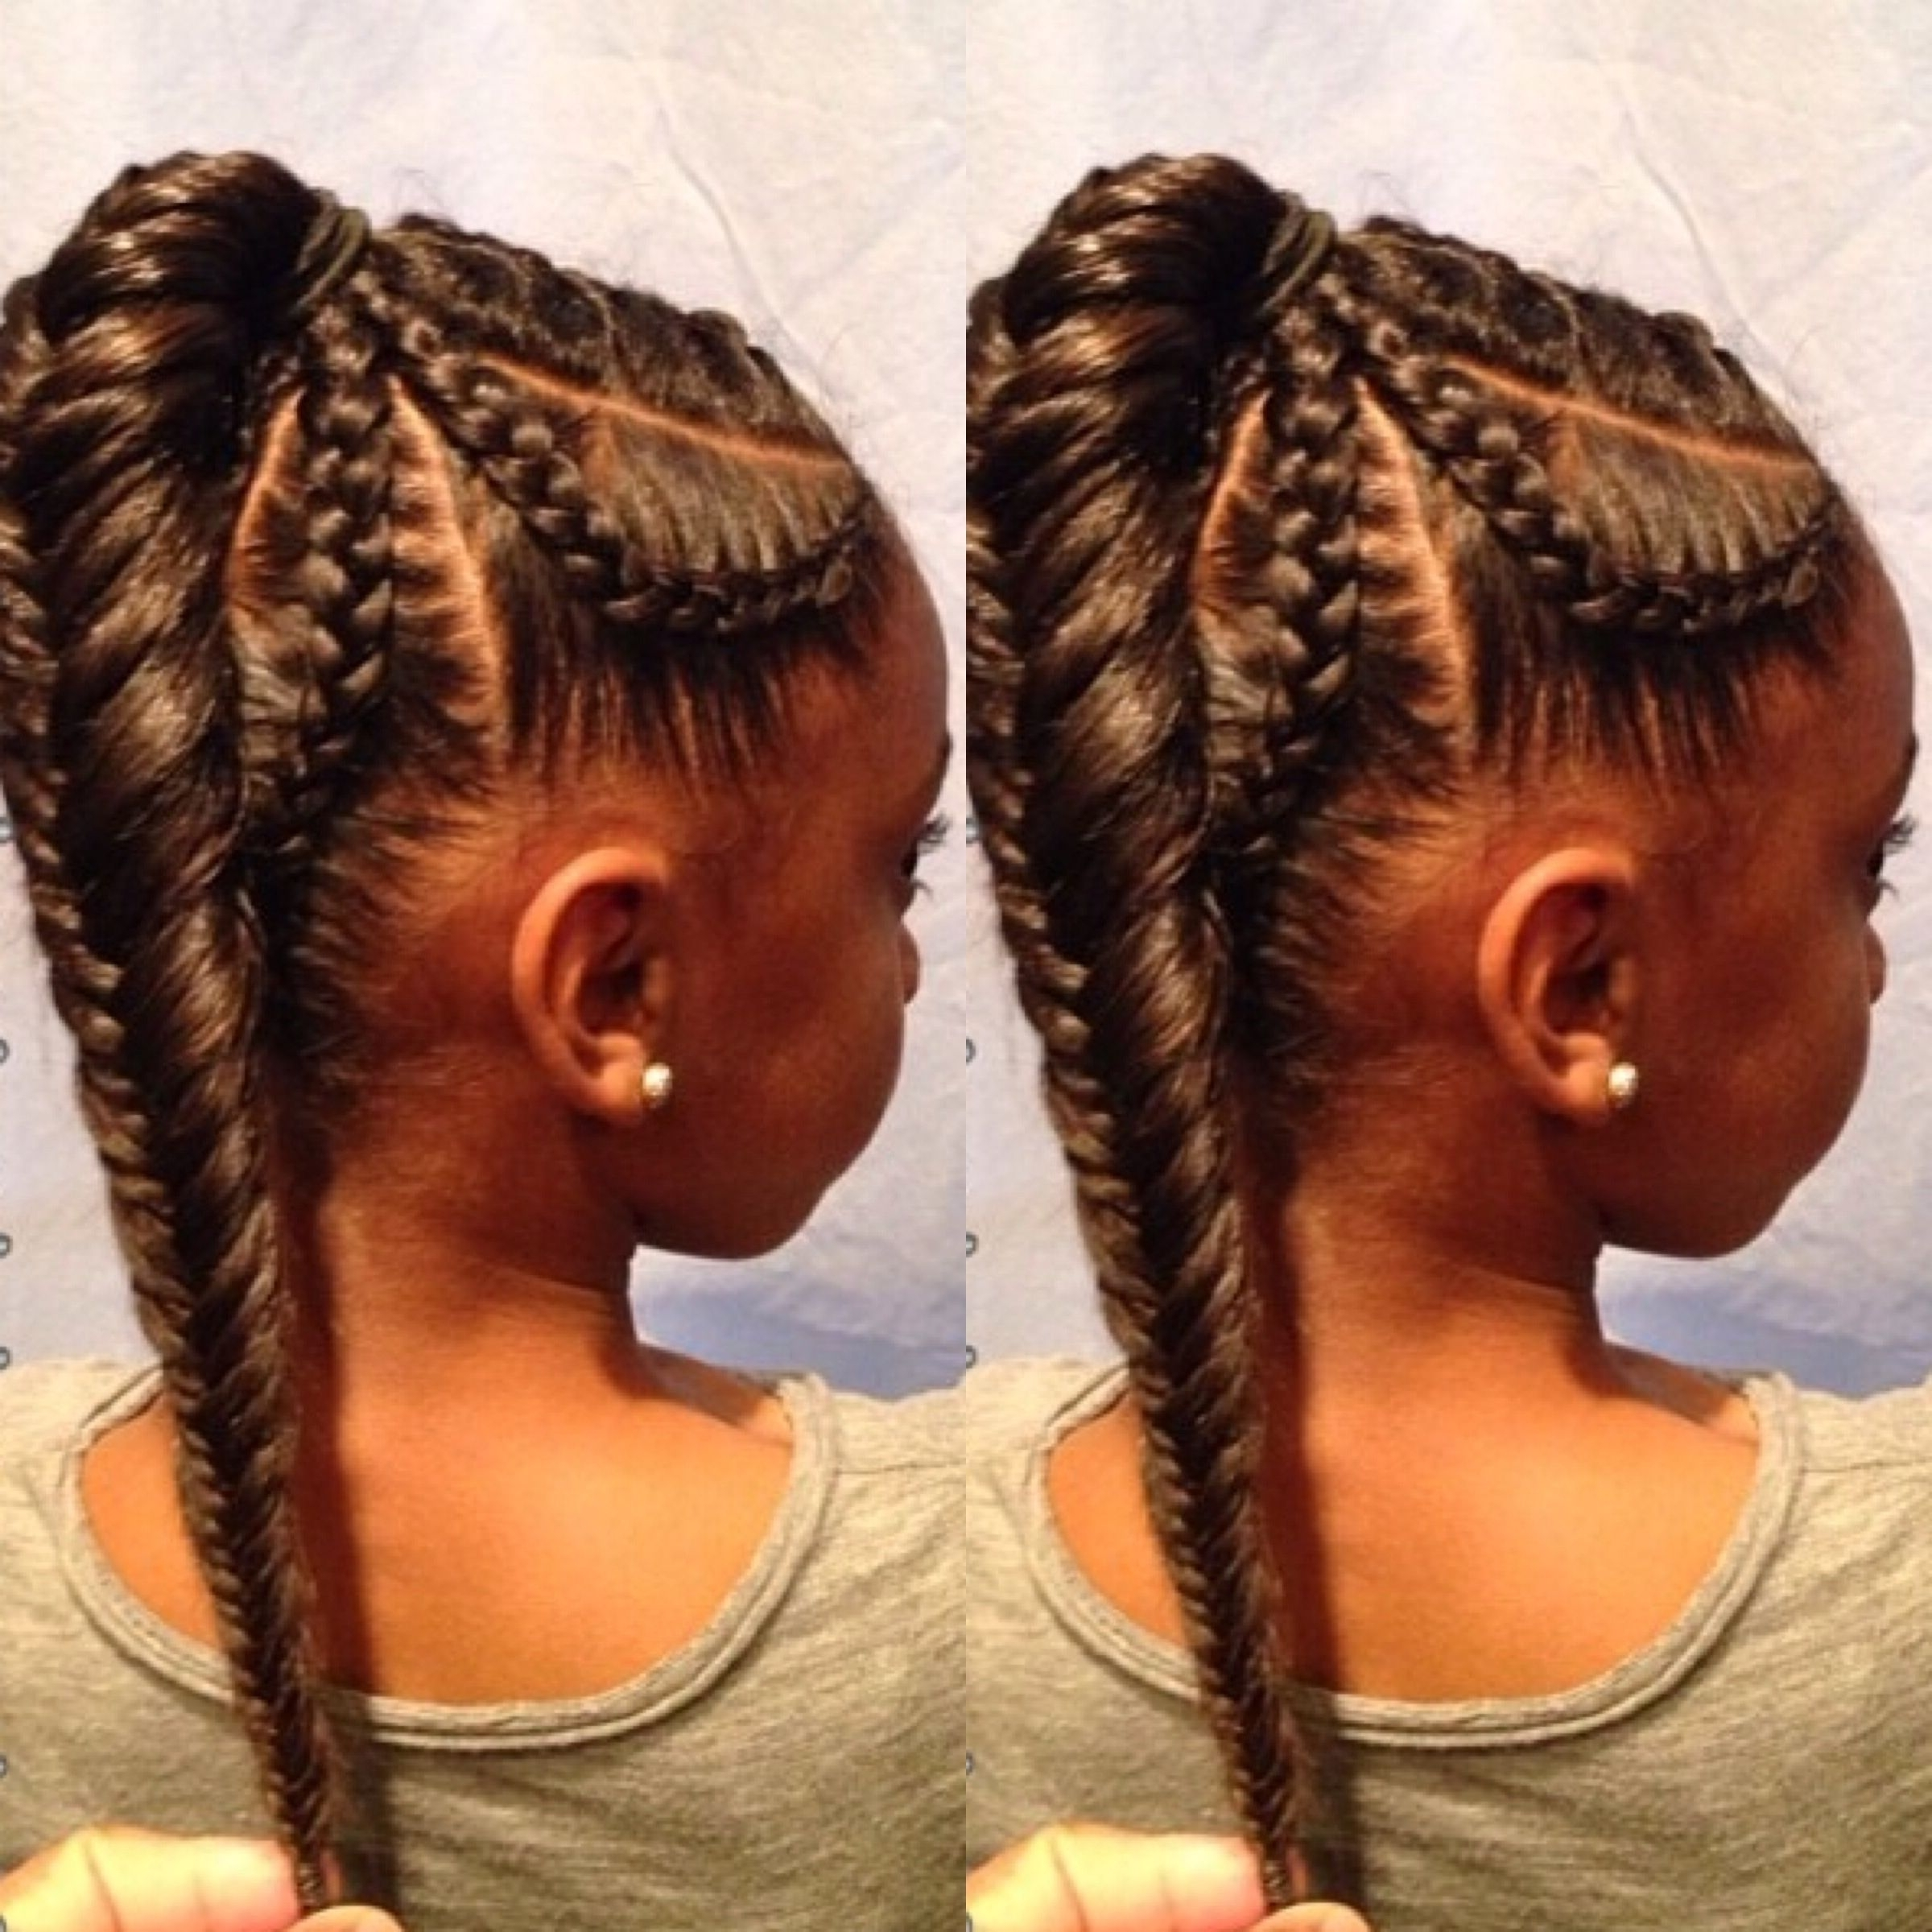 Widely Used Fiercely Braided Ponytail Hairstyles Inside 70 Best Black Braided Hairstyles That Turn Heads (View 18 of 20)